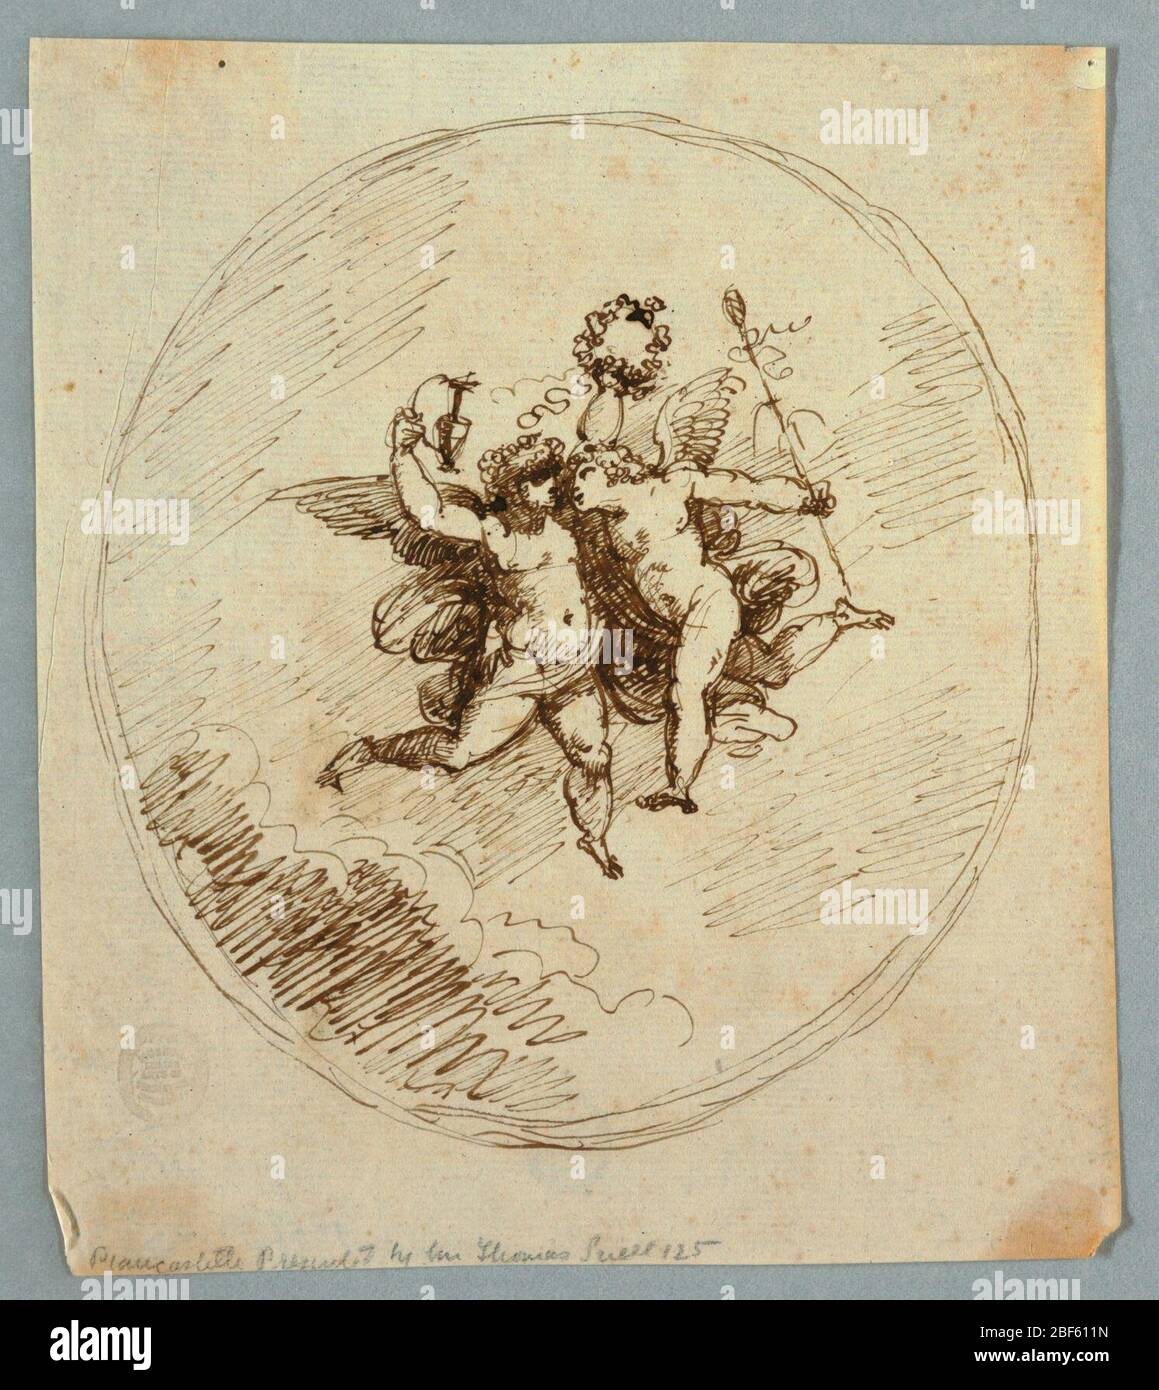 Two Flying Putti with Attributes of Dionysus. Vertical rectangle showing two loosely drawn putti in an oval frame. The left putto raises a pitcher and wreath, the right has a thyrsus. Stock Photo